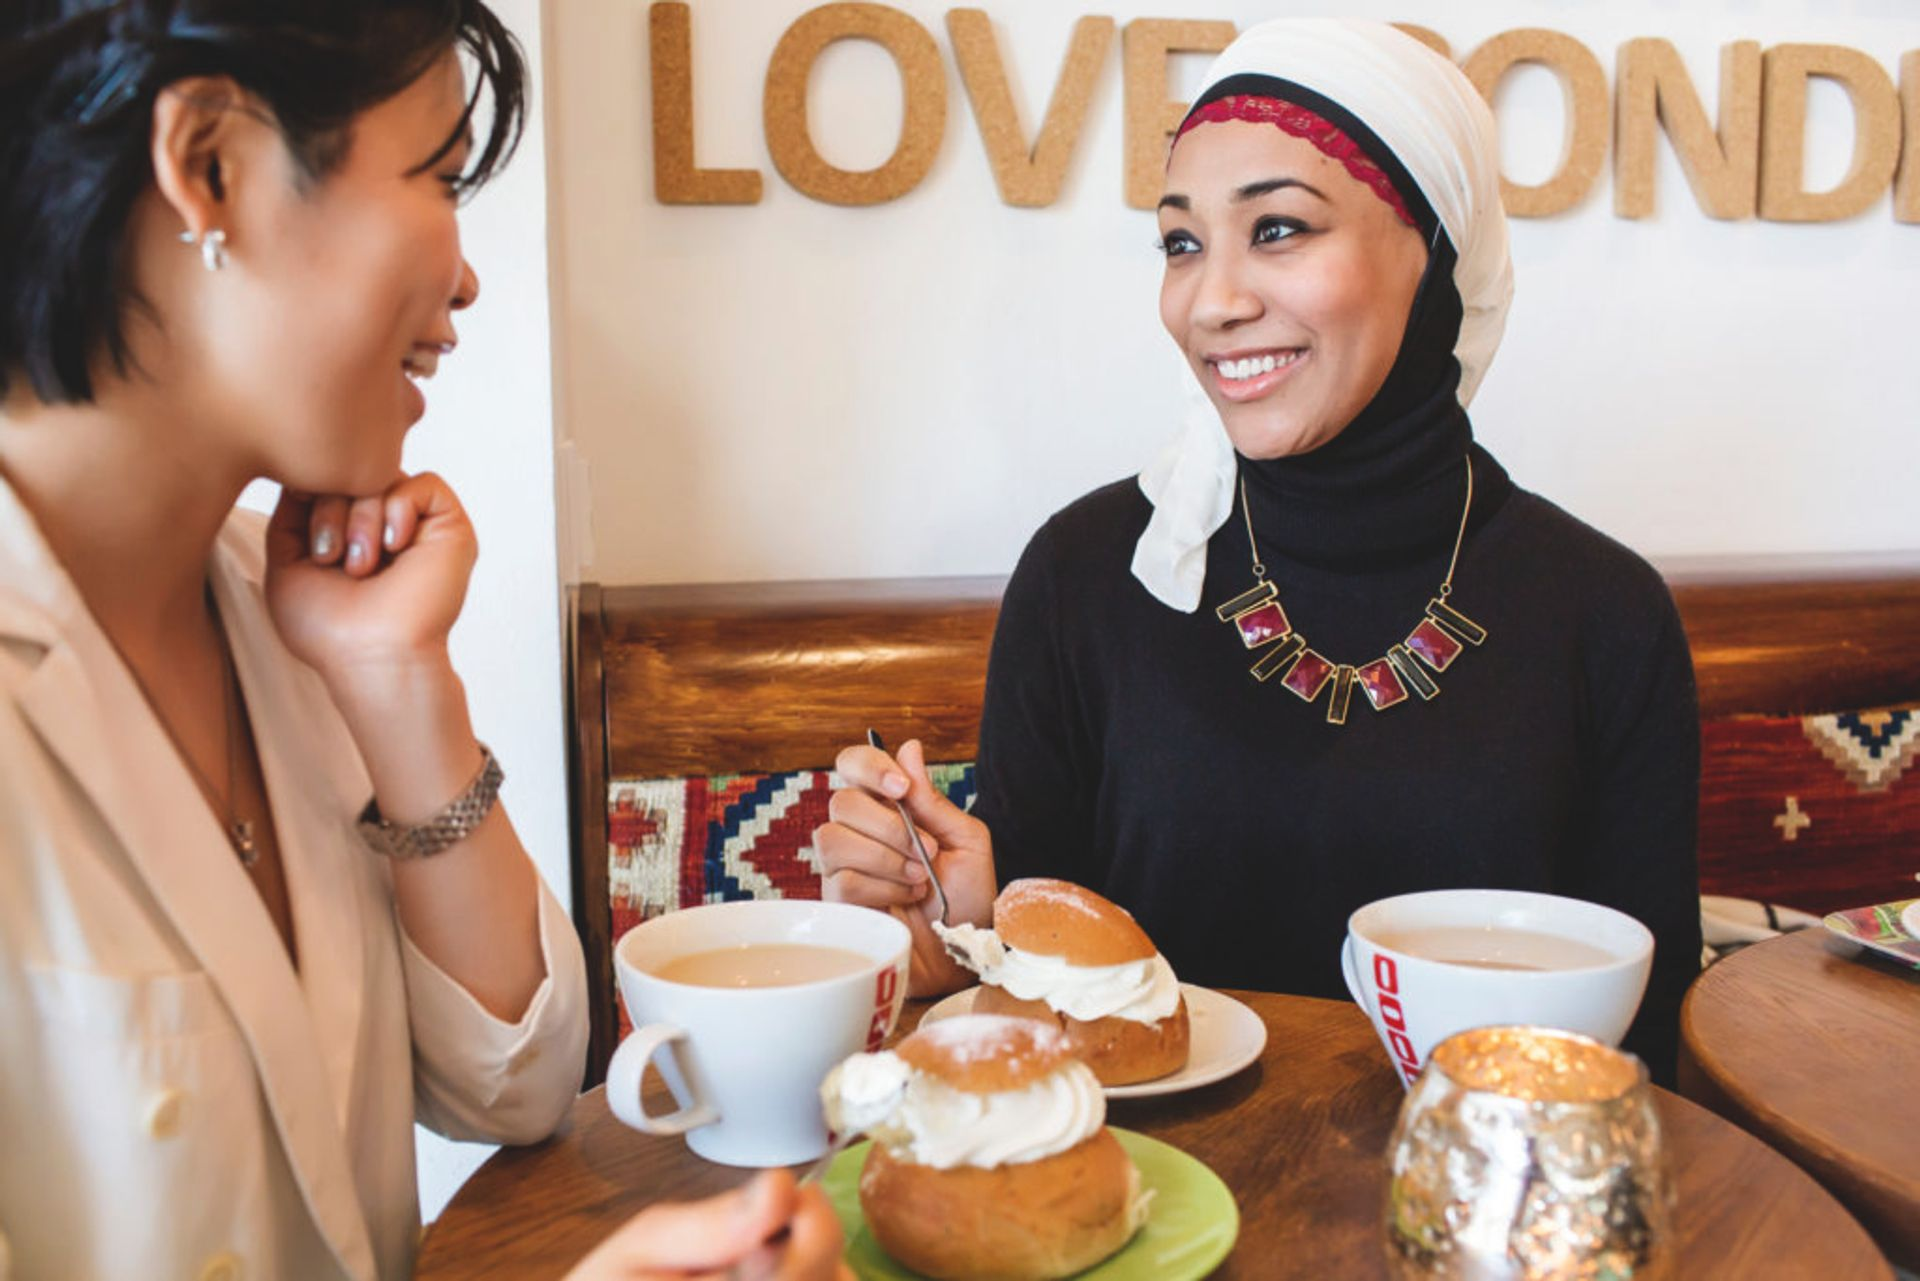 Two women sitting in a cafe drinking coffee and eating semlor - traditional Swedish pastries eaten on Shrove Tuesday.